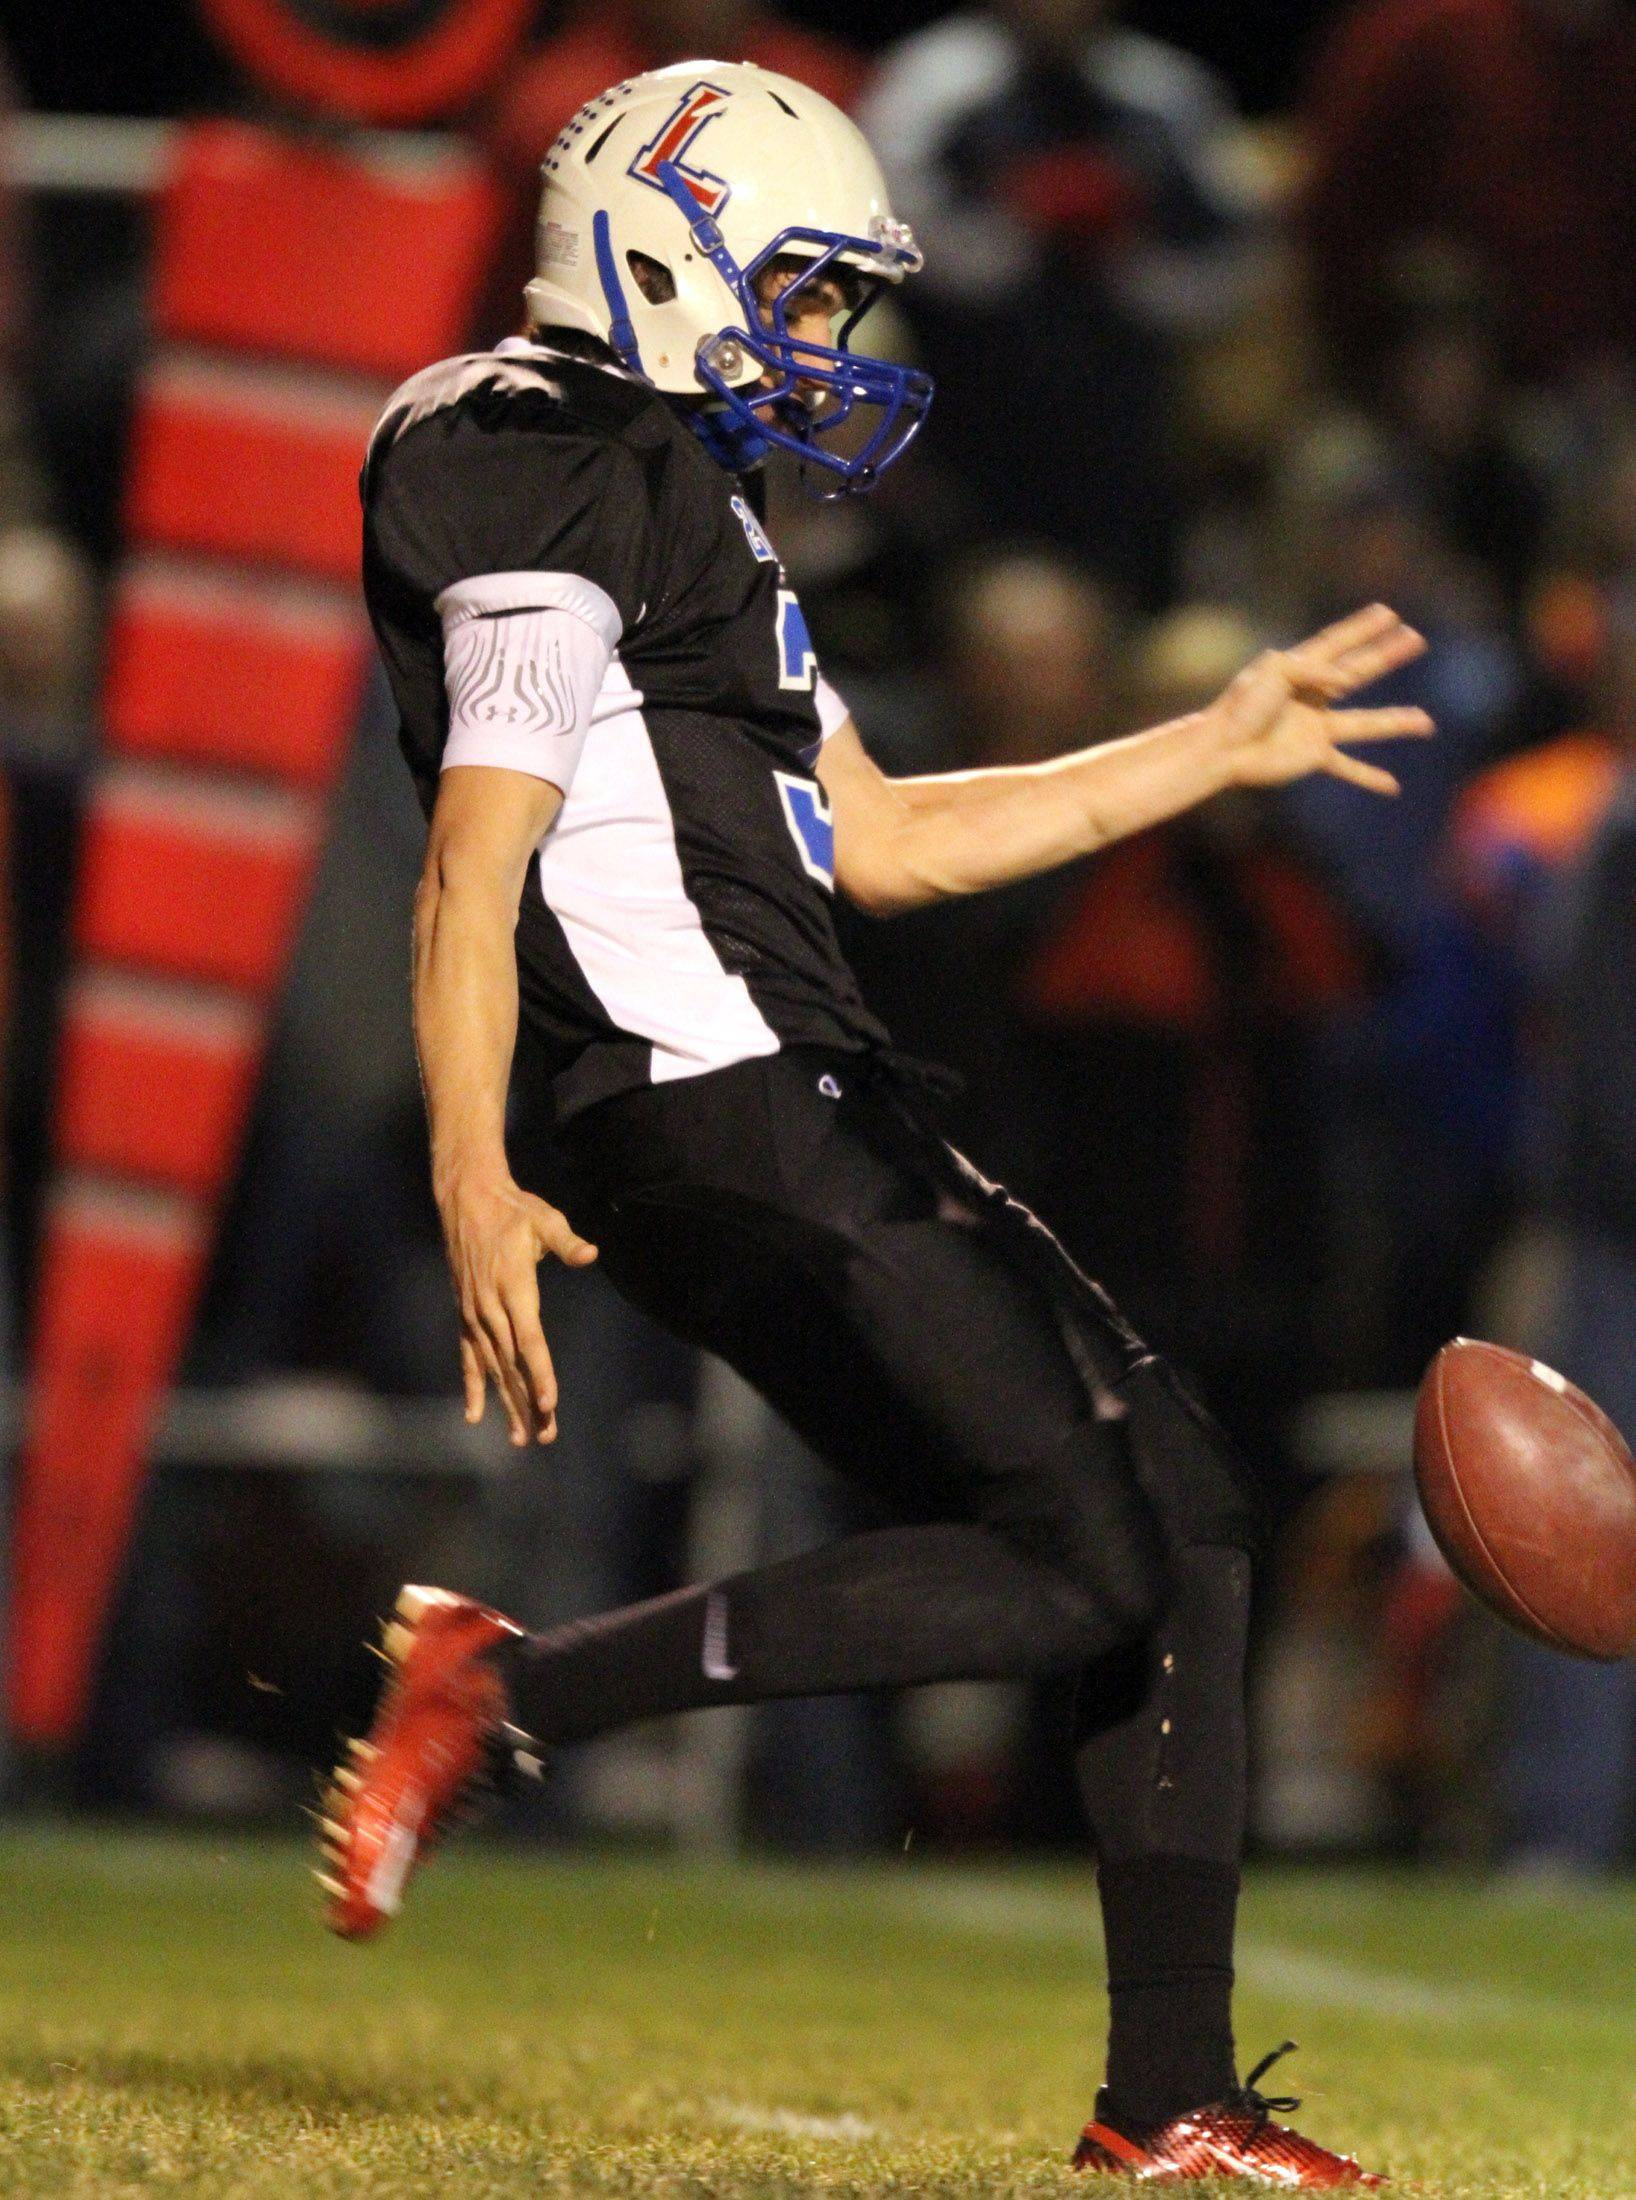 Lakes' Tanner Blain punts the ball away against Batavia at Lakes on Saturday, November 12th.